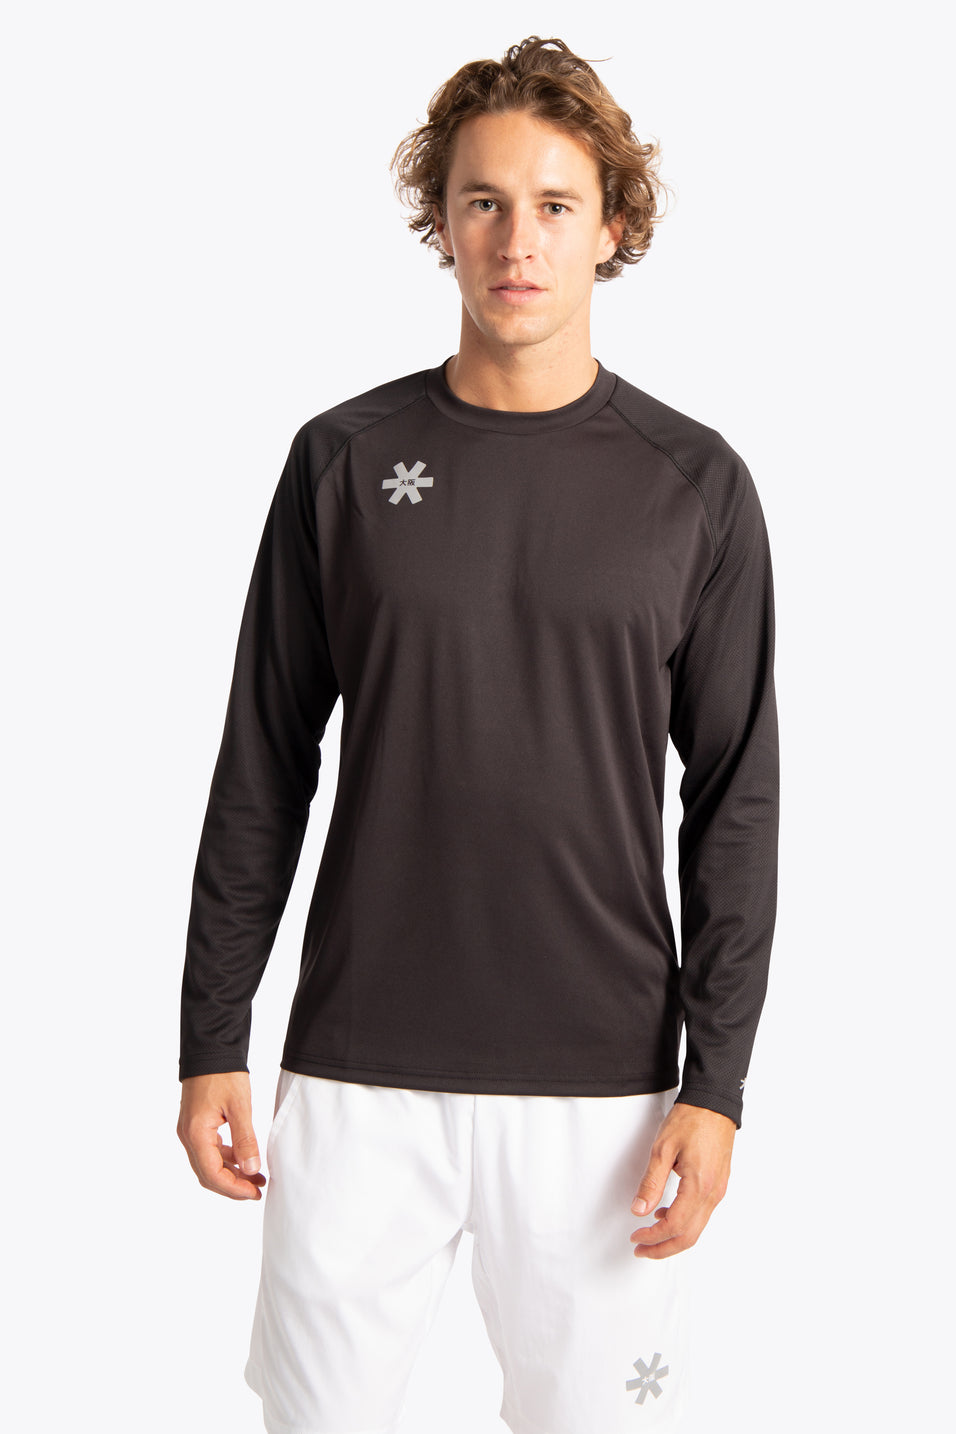 Osaka men long sleeve training